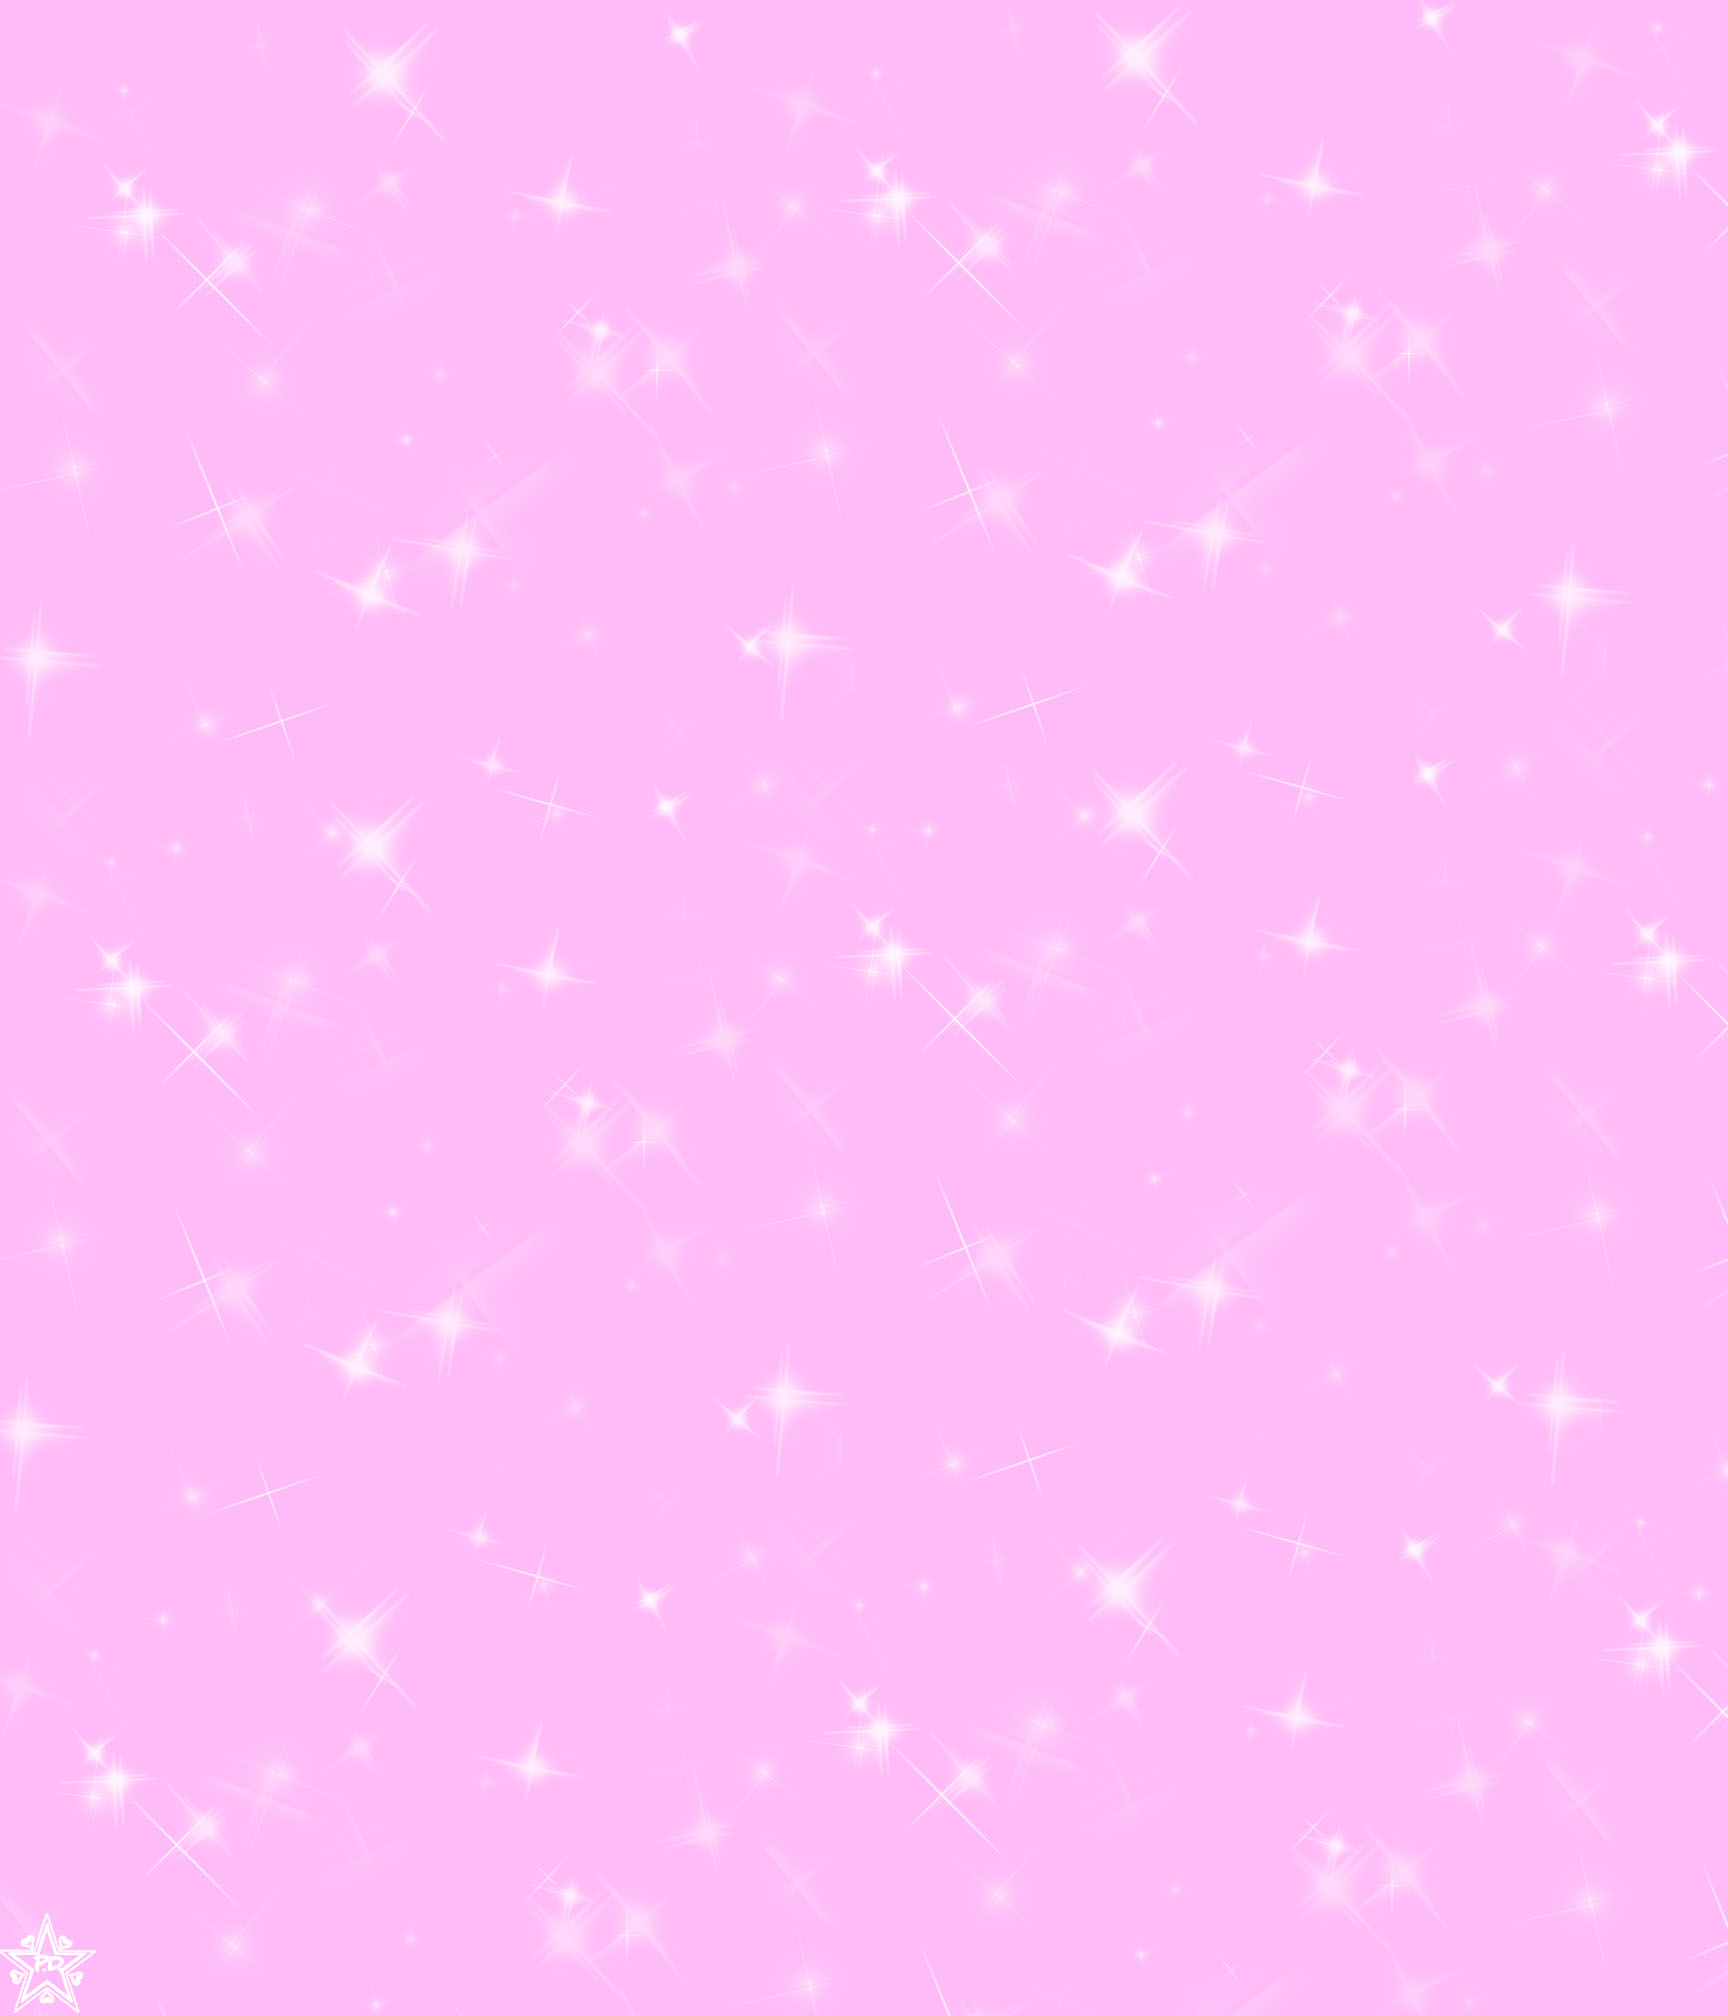 pink sparkly backgrounds is - photo #20